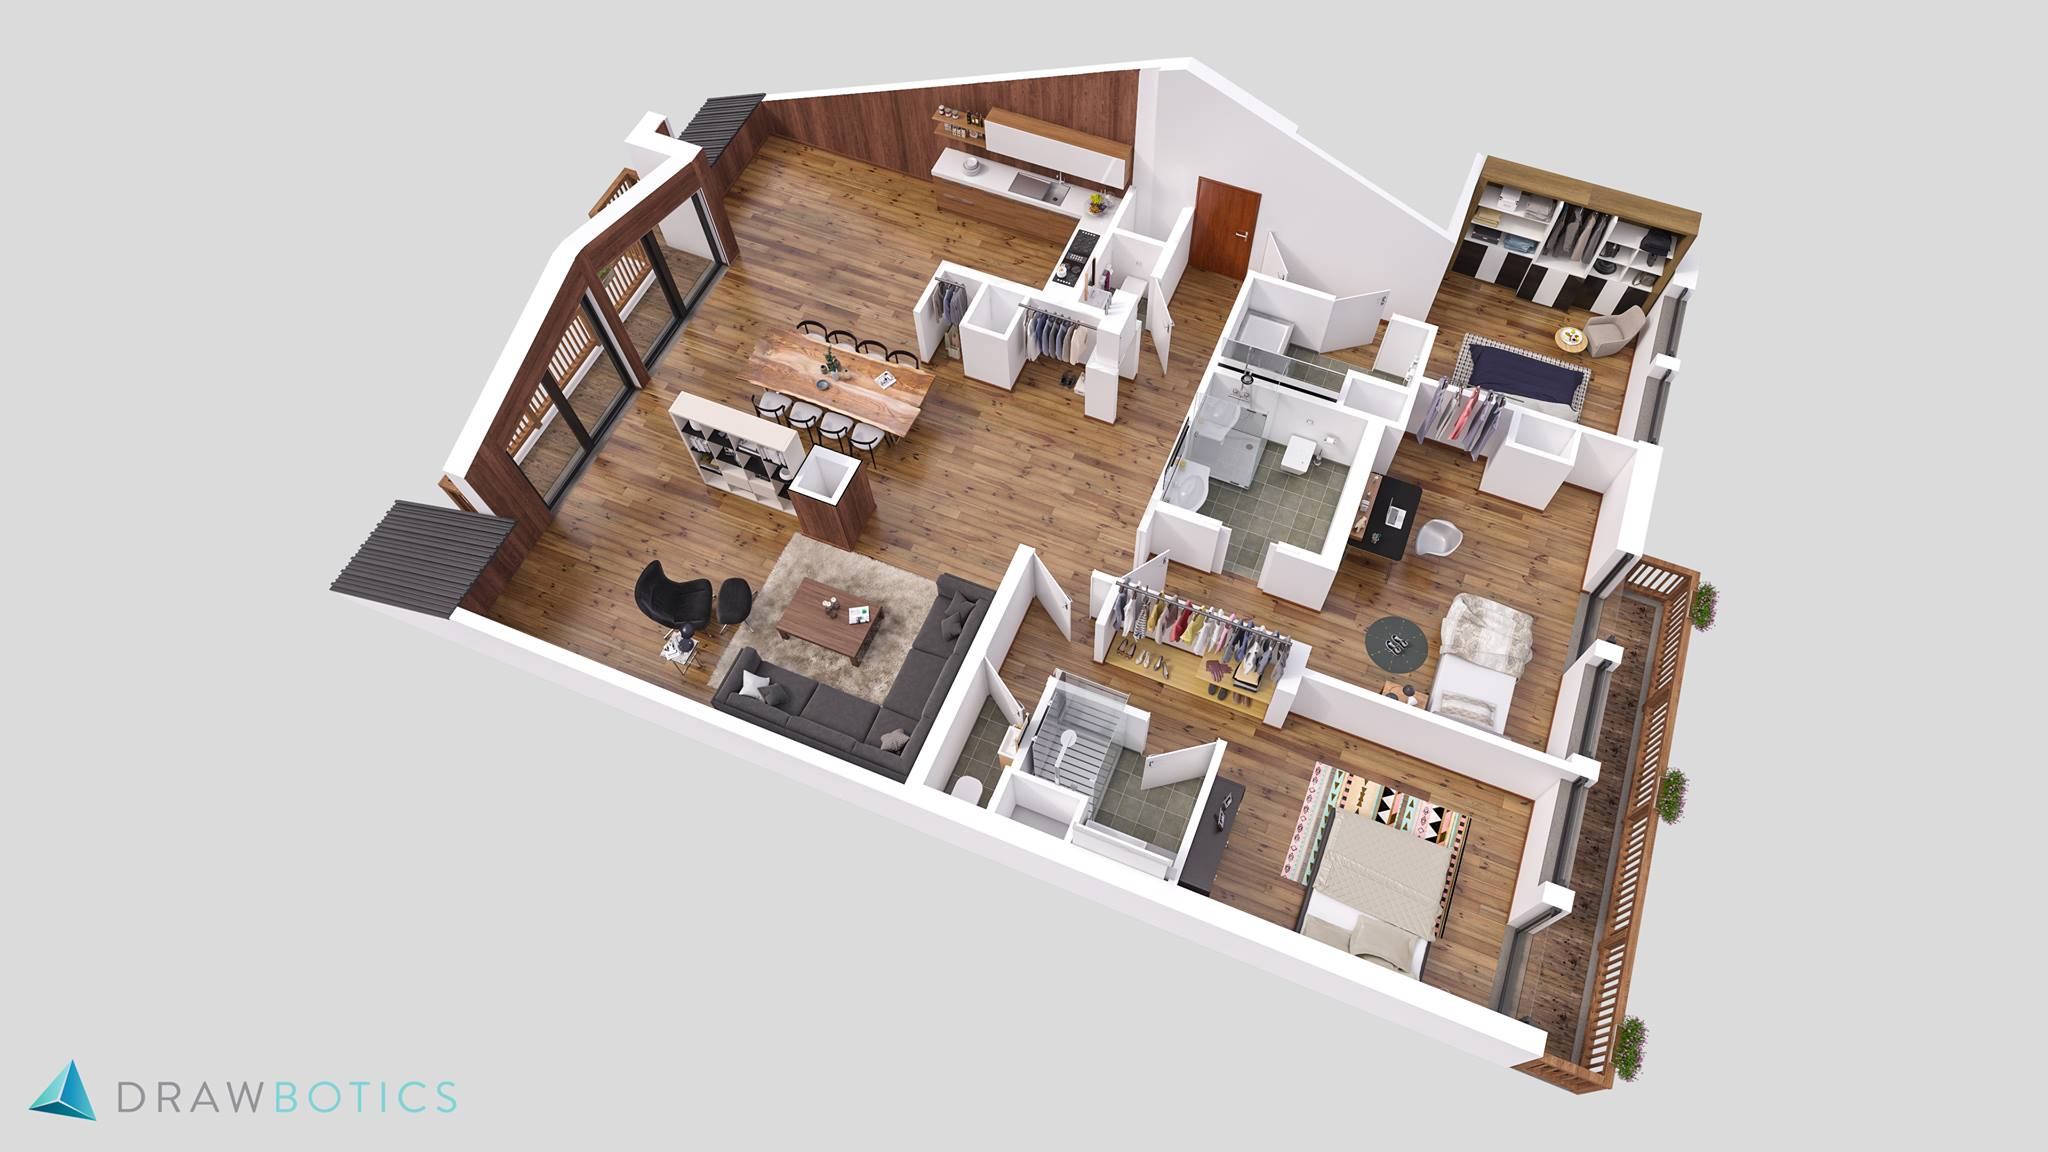 3D Floor Plan by Drawbotics